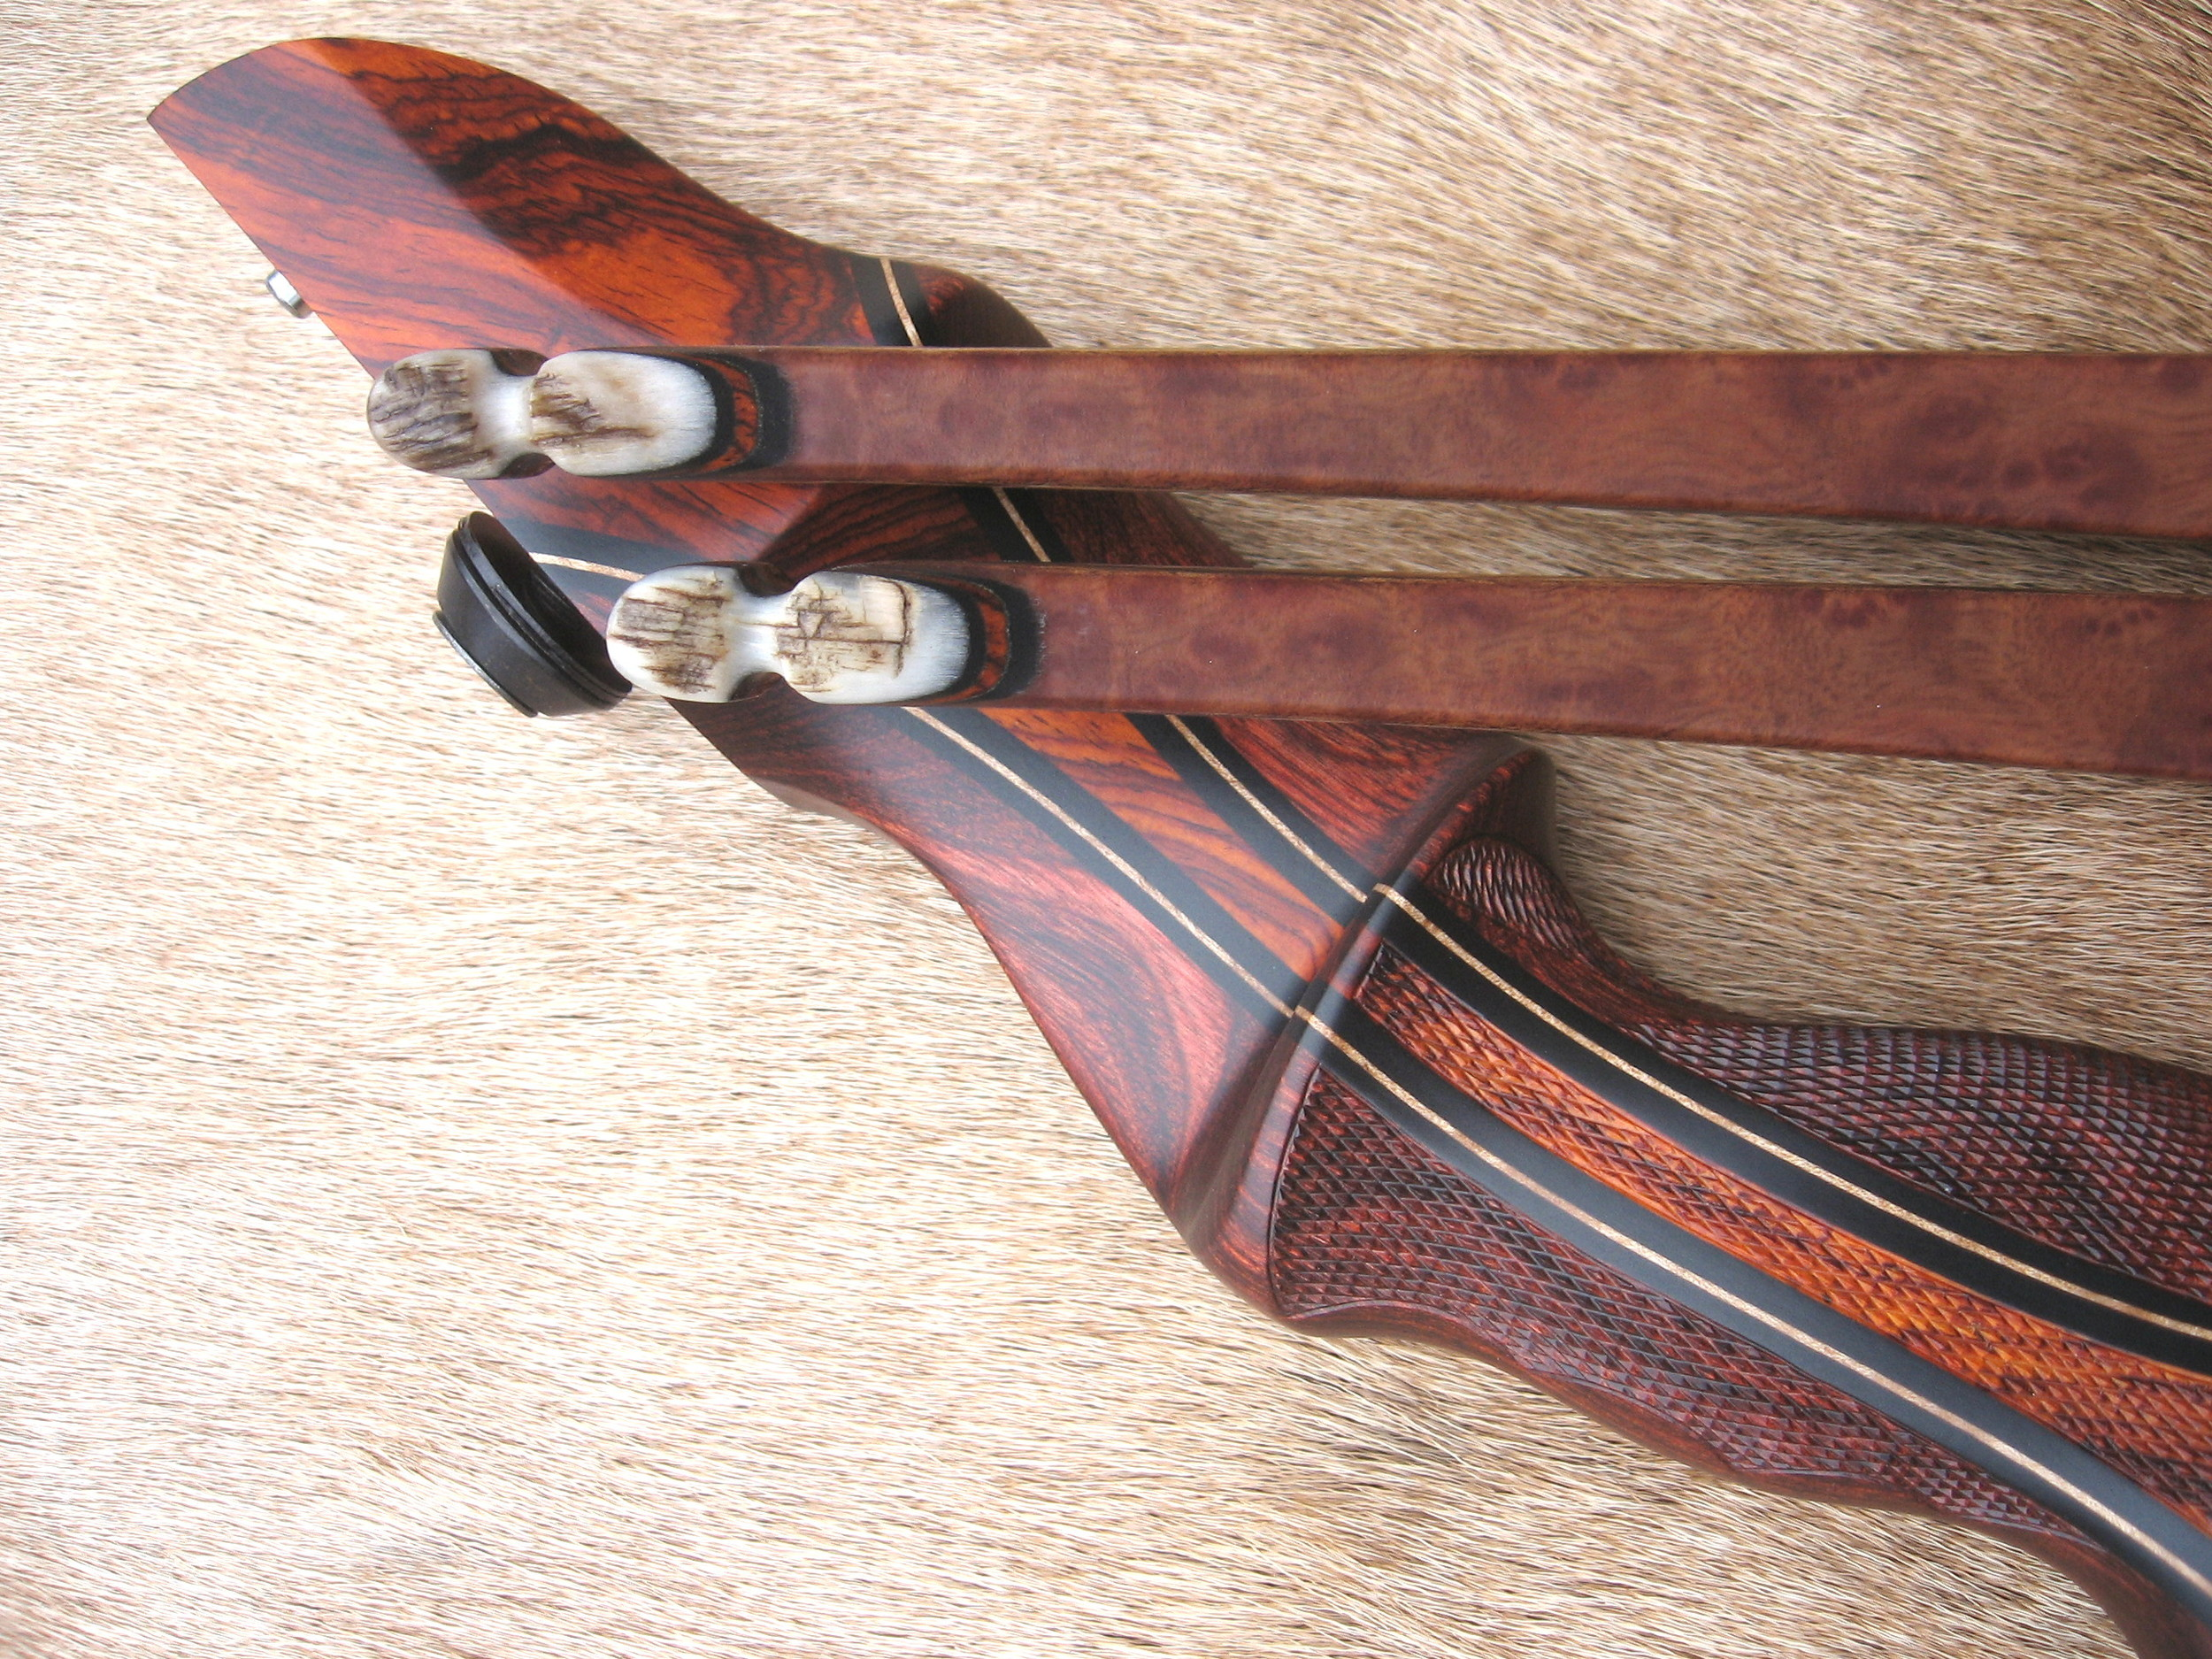 Rosewood Dym Riser w/ Cocobolo Flare- Camphor Burl limbs w/ antler tips